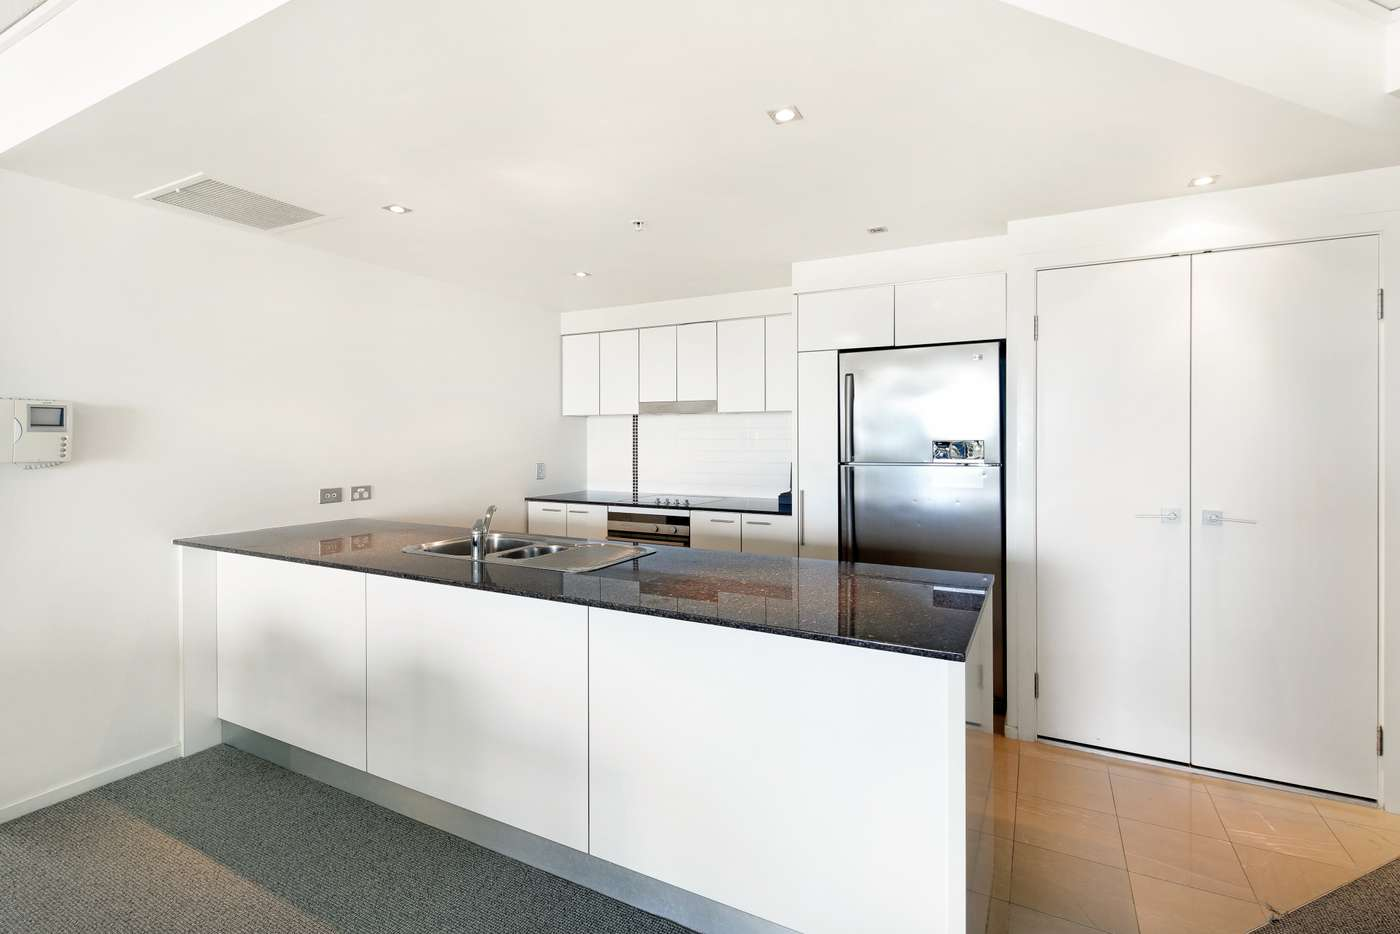 Seventh view of Homely apartment listing, 1106 'Mantra Sierra Grand' 22 Surf Parade, Broadbeach QLD 4218